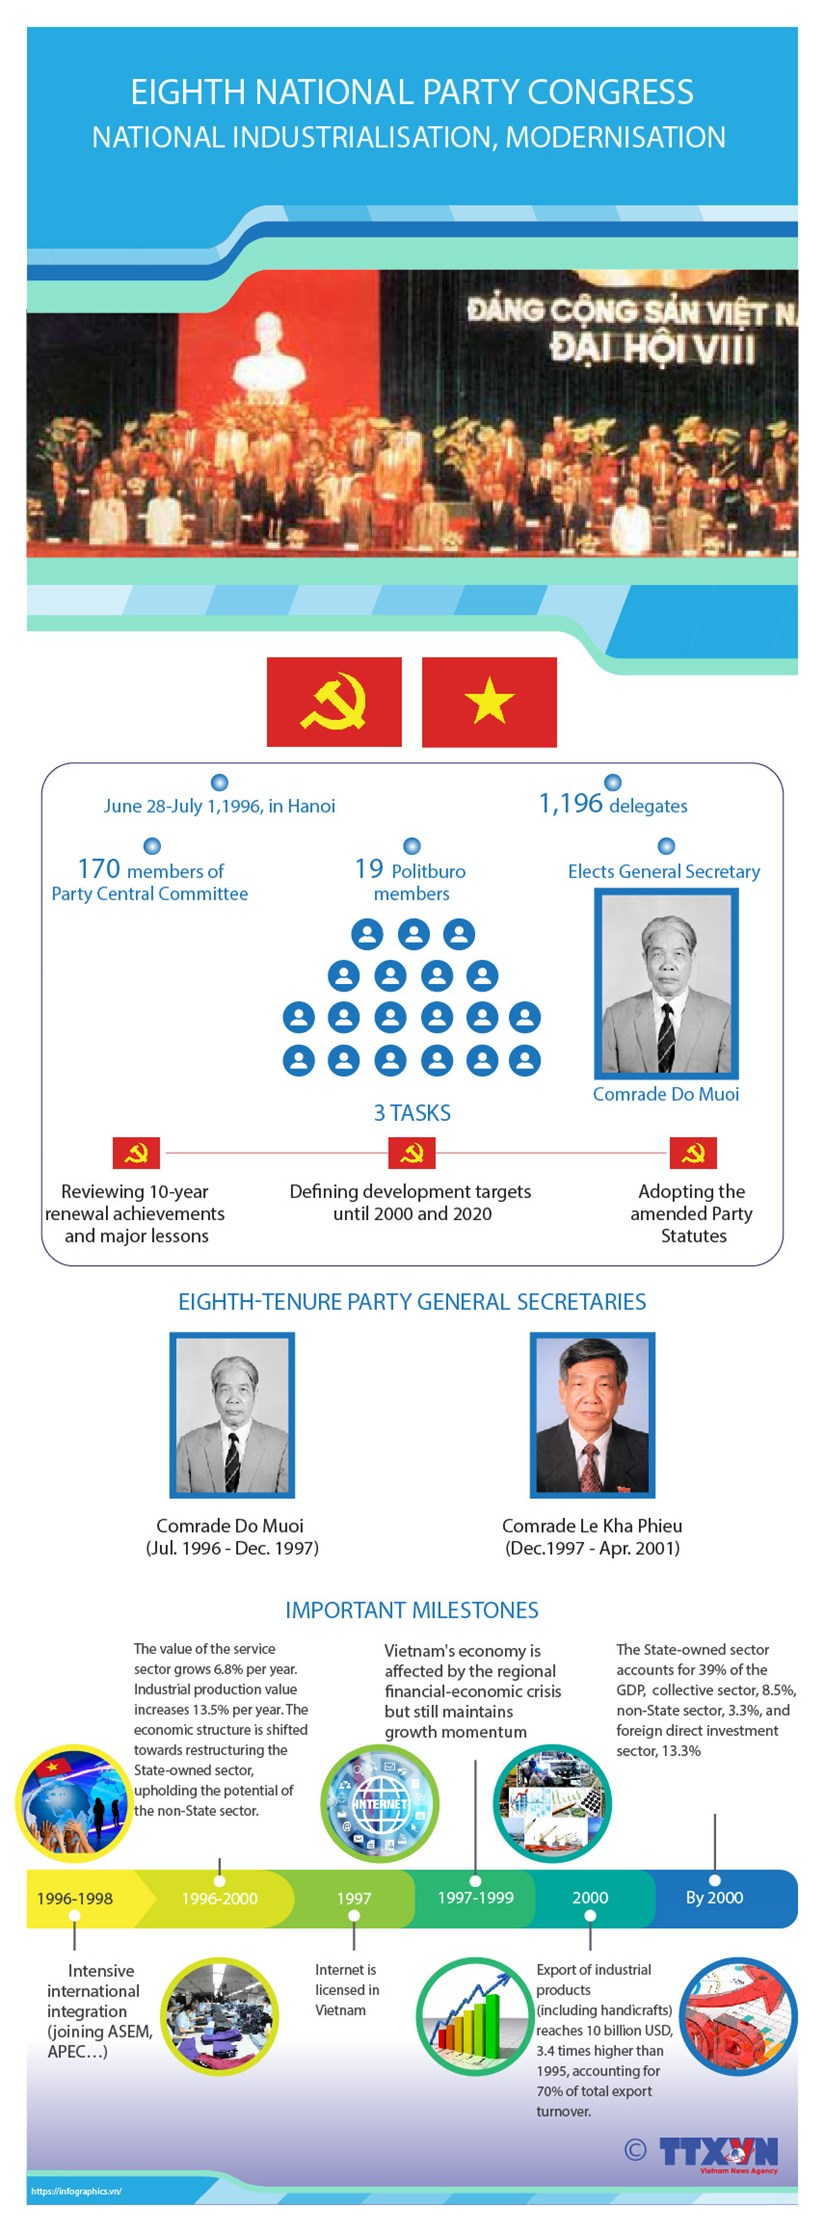 Eighth National Party Congress: National industrialisation, modernisation hinh anh 1